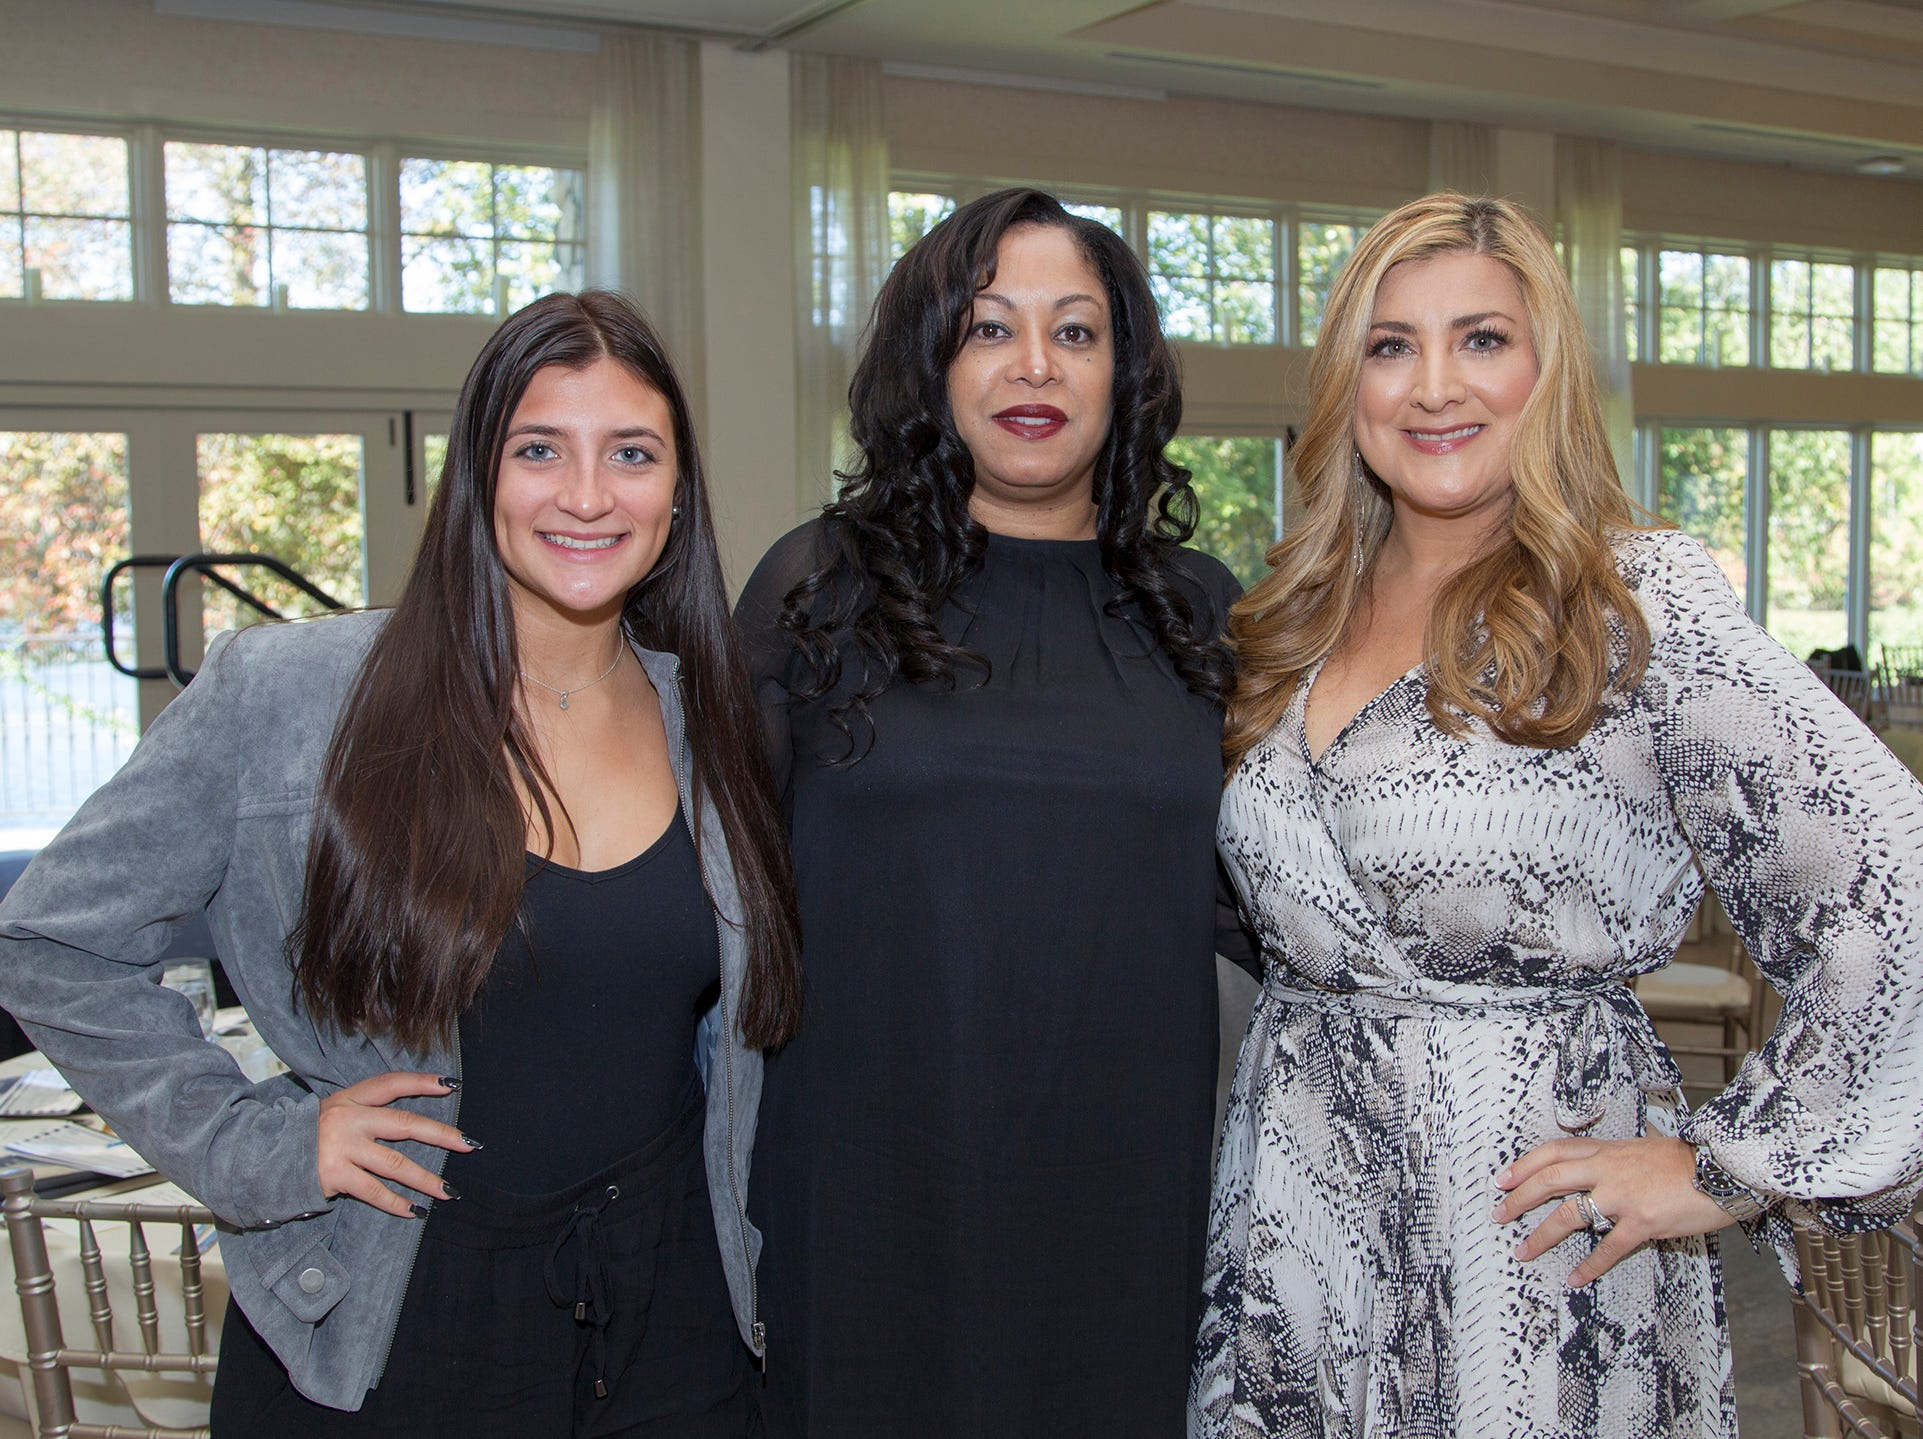 Heather Maniscalco, Marilyn Garcia, Antonella Romano. Spring Lake Toys Foundation held its 3rd annual fundraising gala luncheon at Indian Trail Club in Franklin Lakes. The luncheon fundraiser raises funds for children with illnesses. 10/18/2018